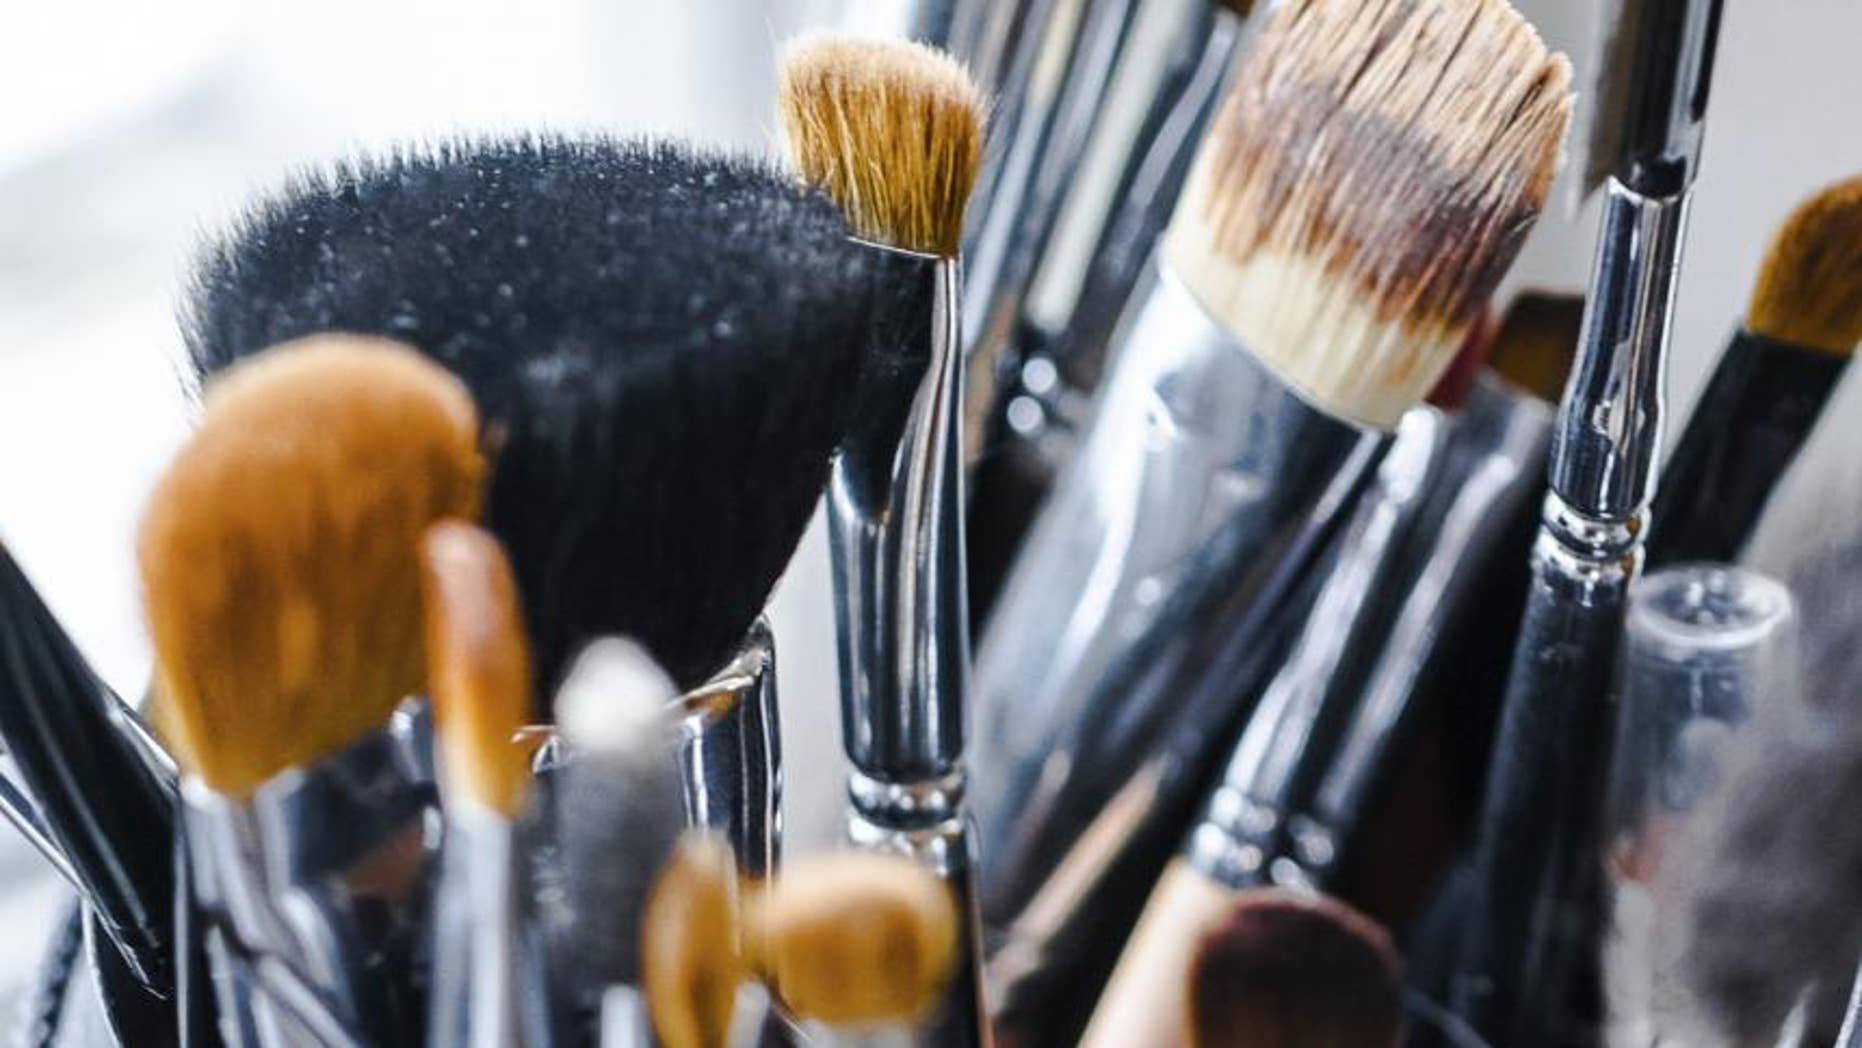 Covering blemishes with more makeup may worsen acne.